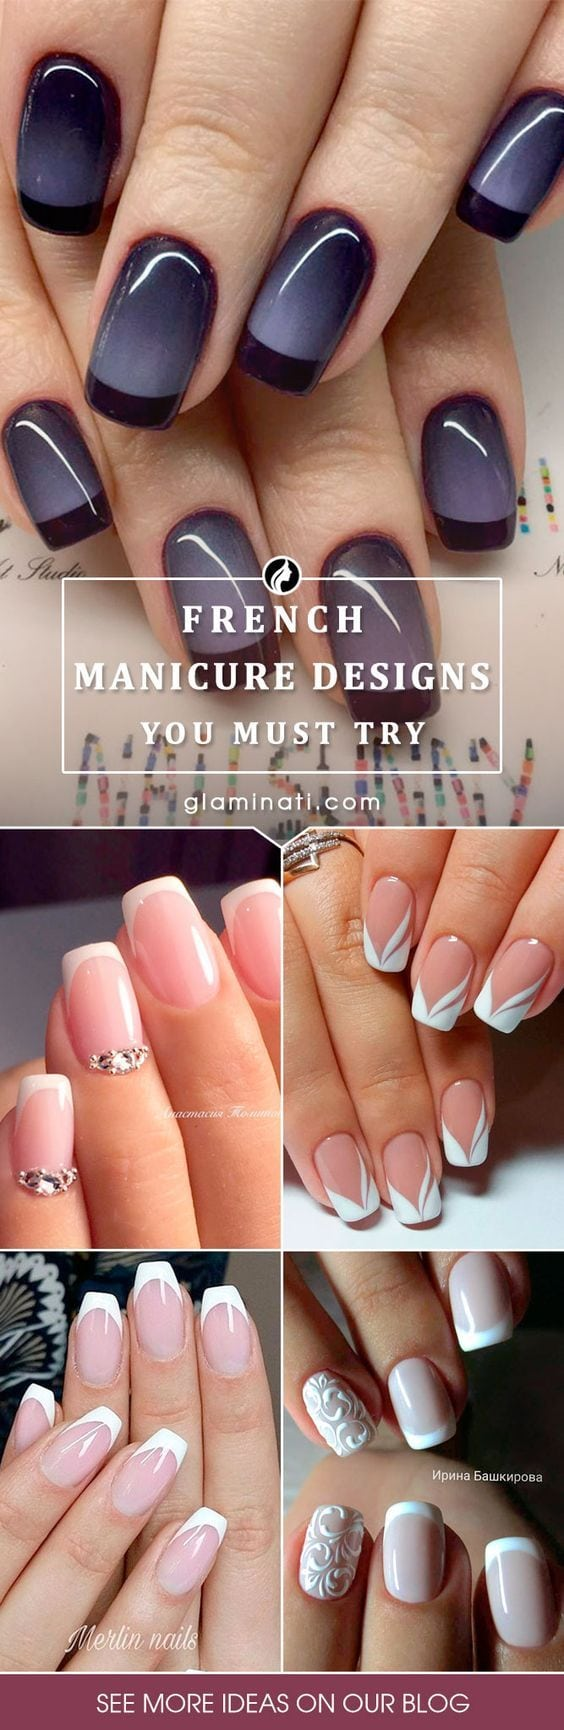 [ad_1]  Designs of French manicure are much more intricate this season. Click to see our favorite French manicure designs. Source by RockabellaNails [ad_2]  …